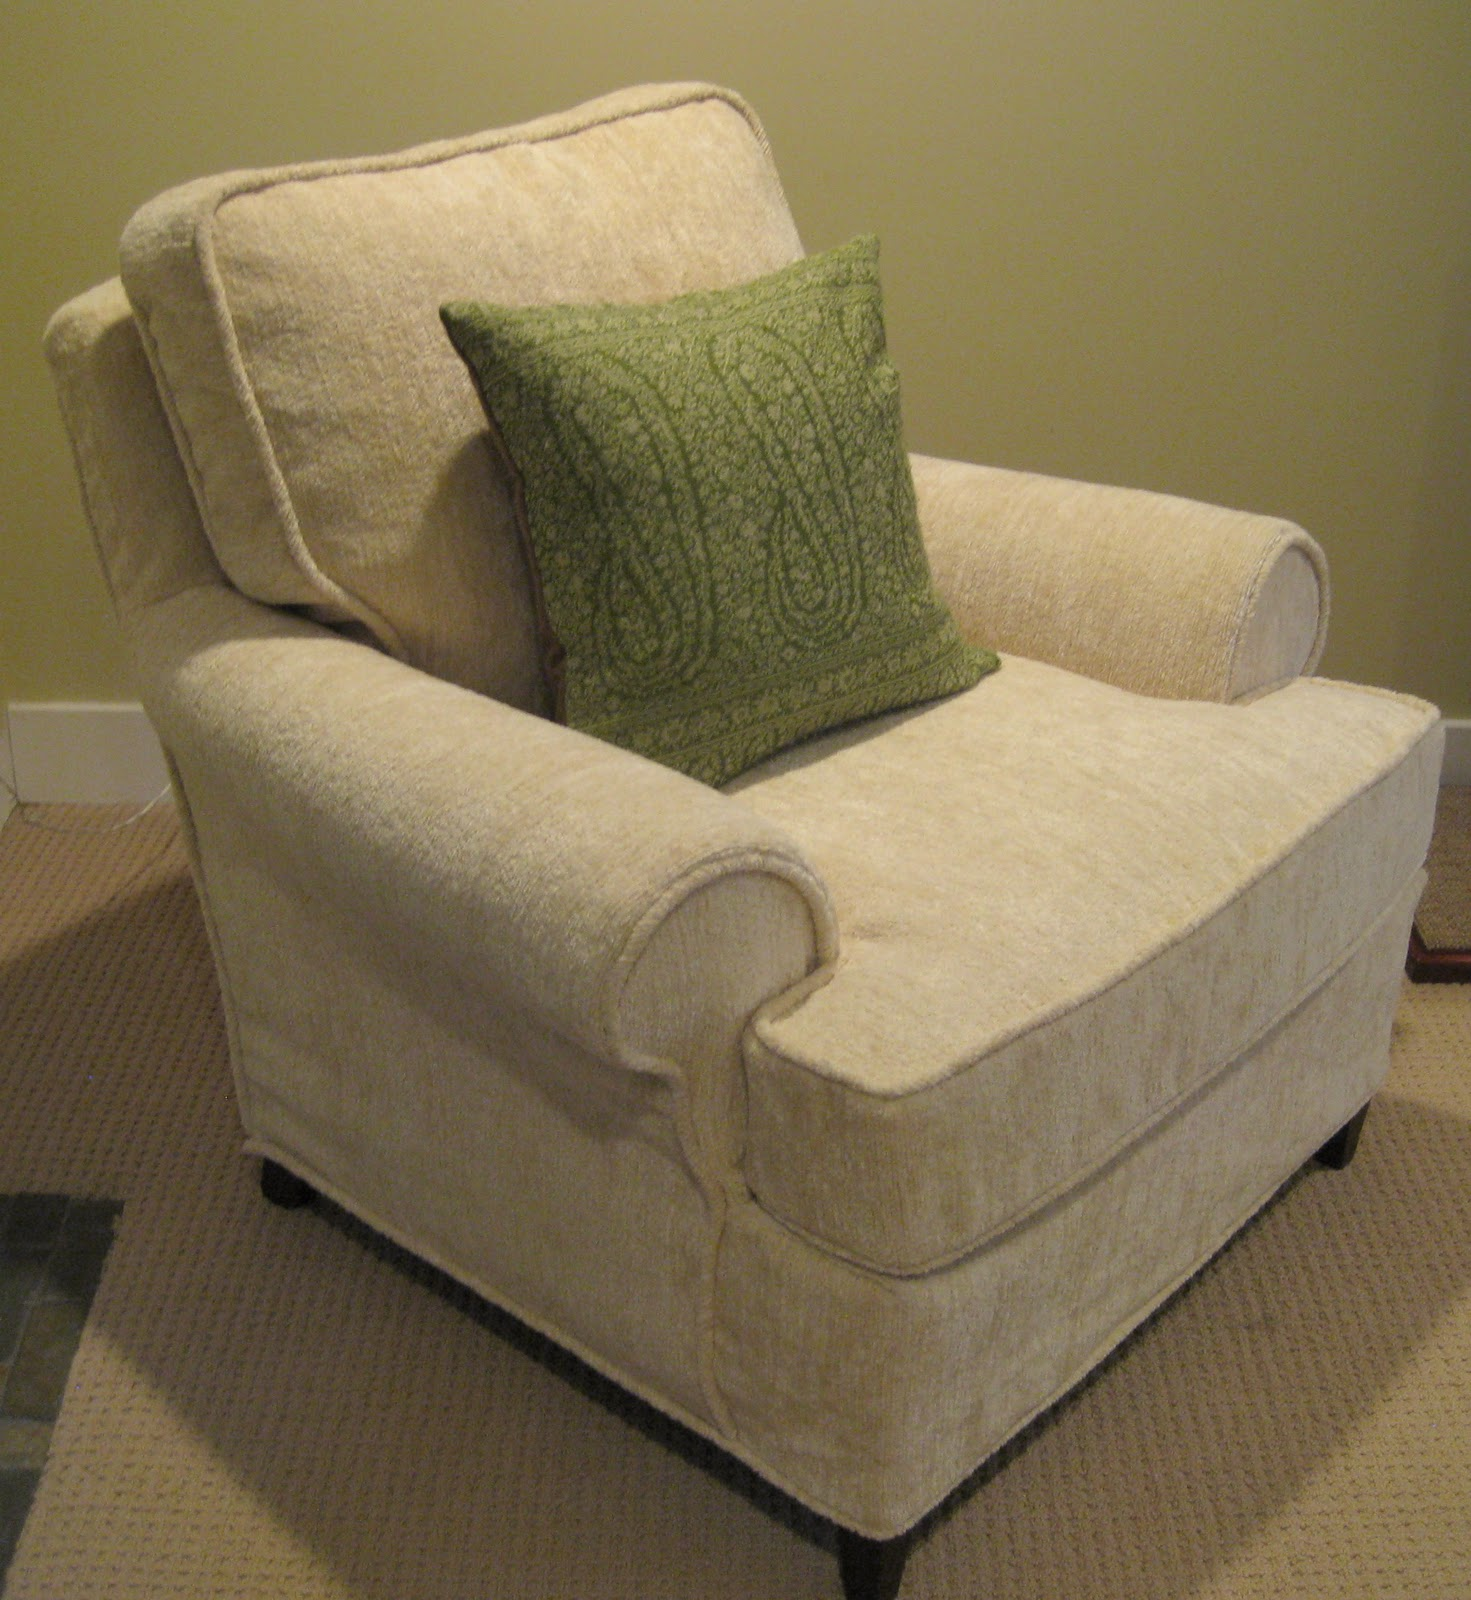 barrel chair cushions banquet covers on craigslist custom slipcovers by shelley club